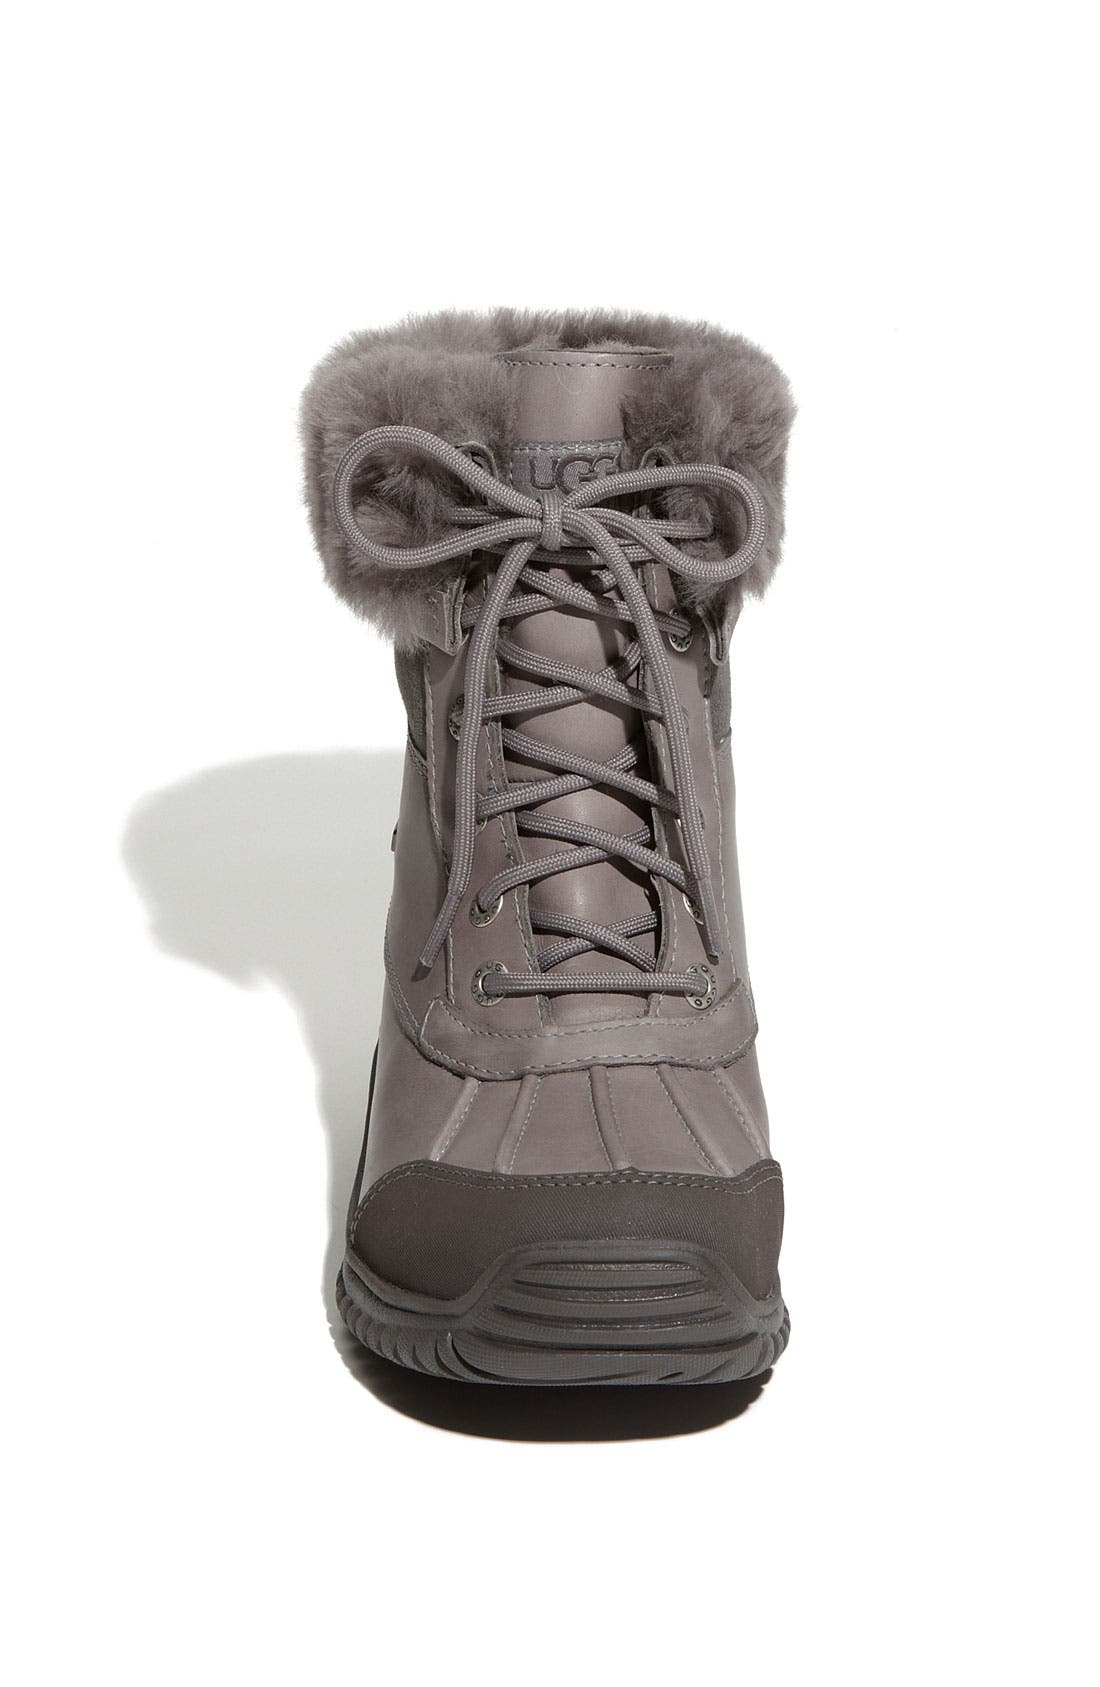 Adirondack II Waterproof Boot,                             Alternate thumbnail 20, color,